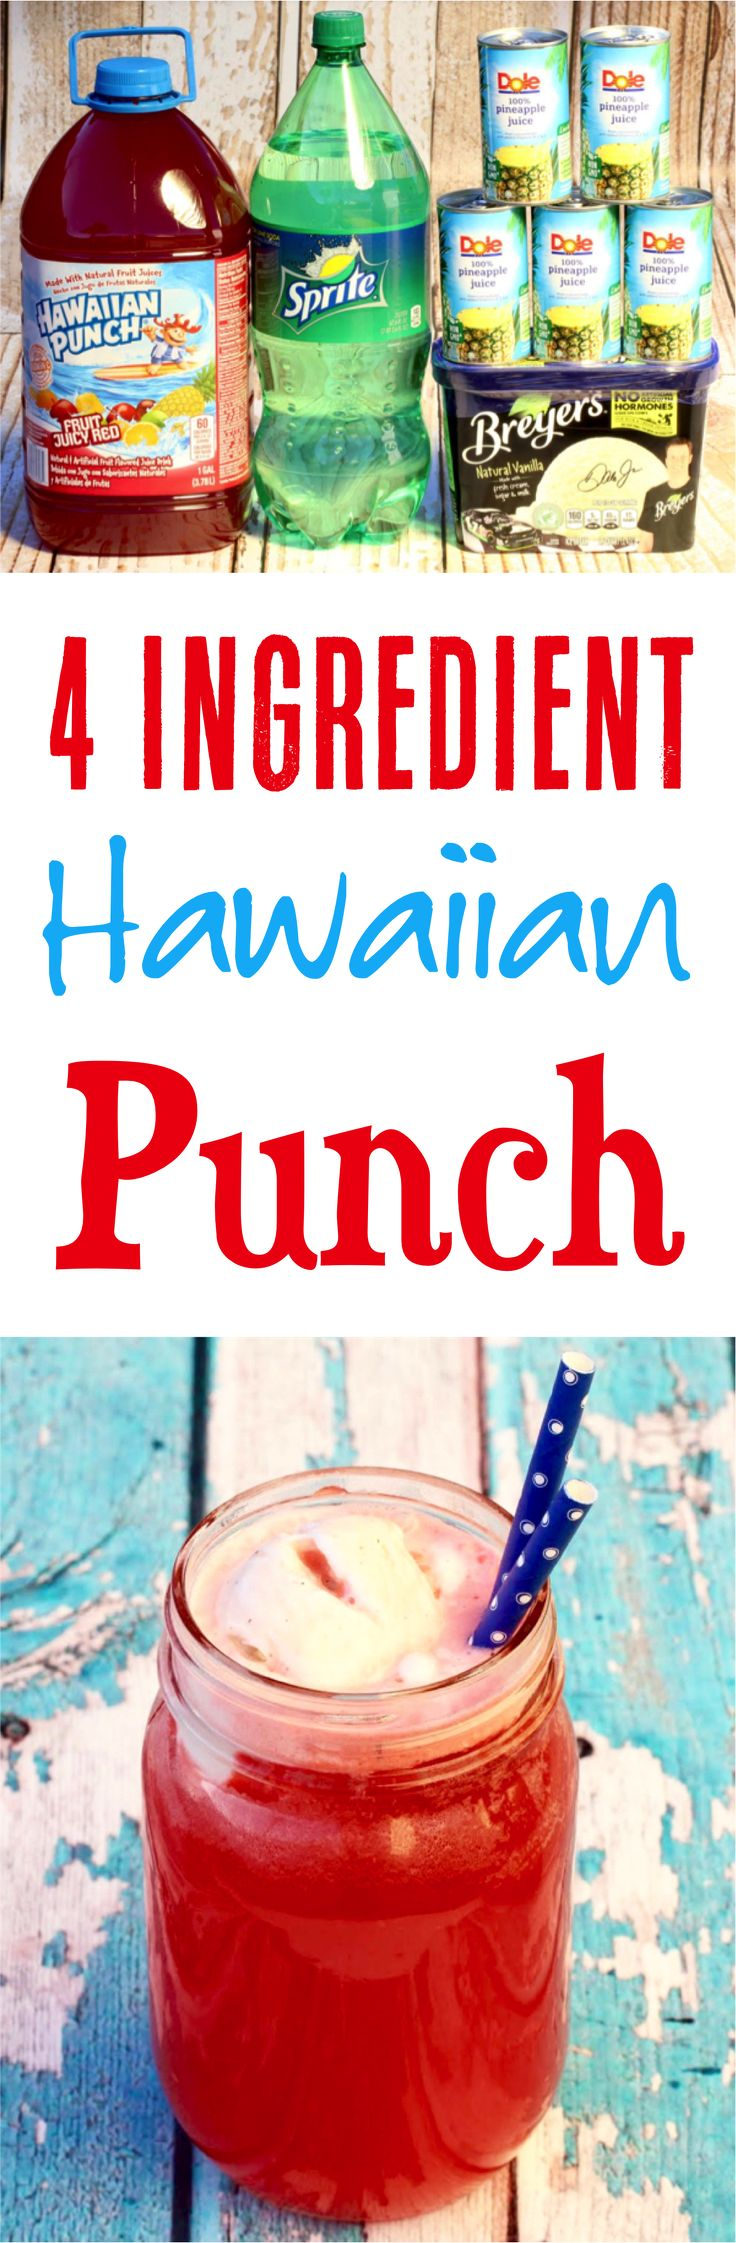 Punch Recipe!  Such a fun summer drink recipe that you'll love! | NeverEndingJourneys.com